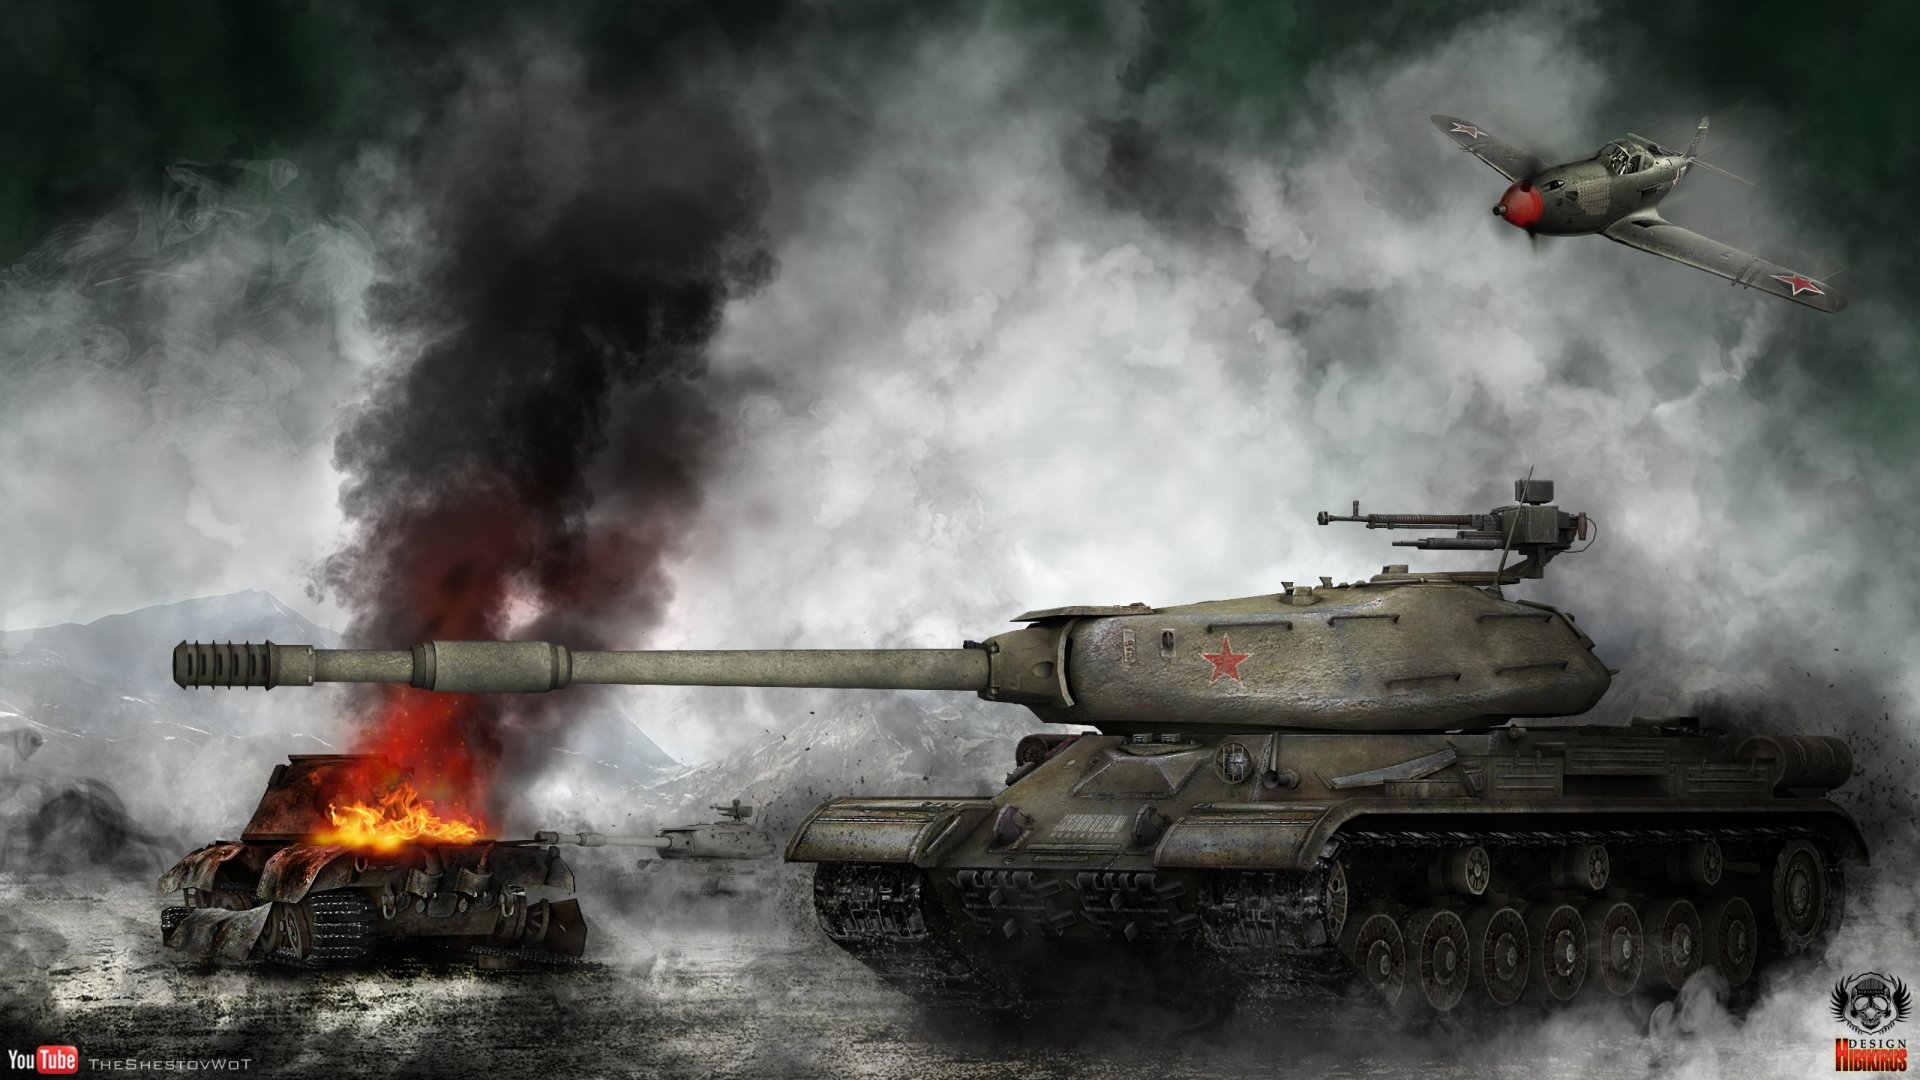 Video Game - World Of Tanks  Tank Video Game Wallpaper